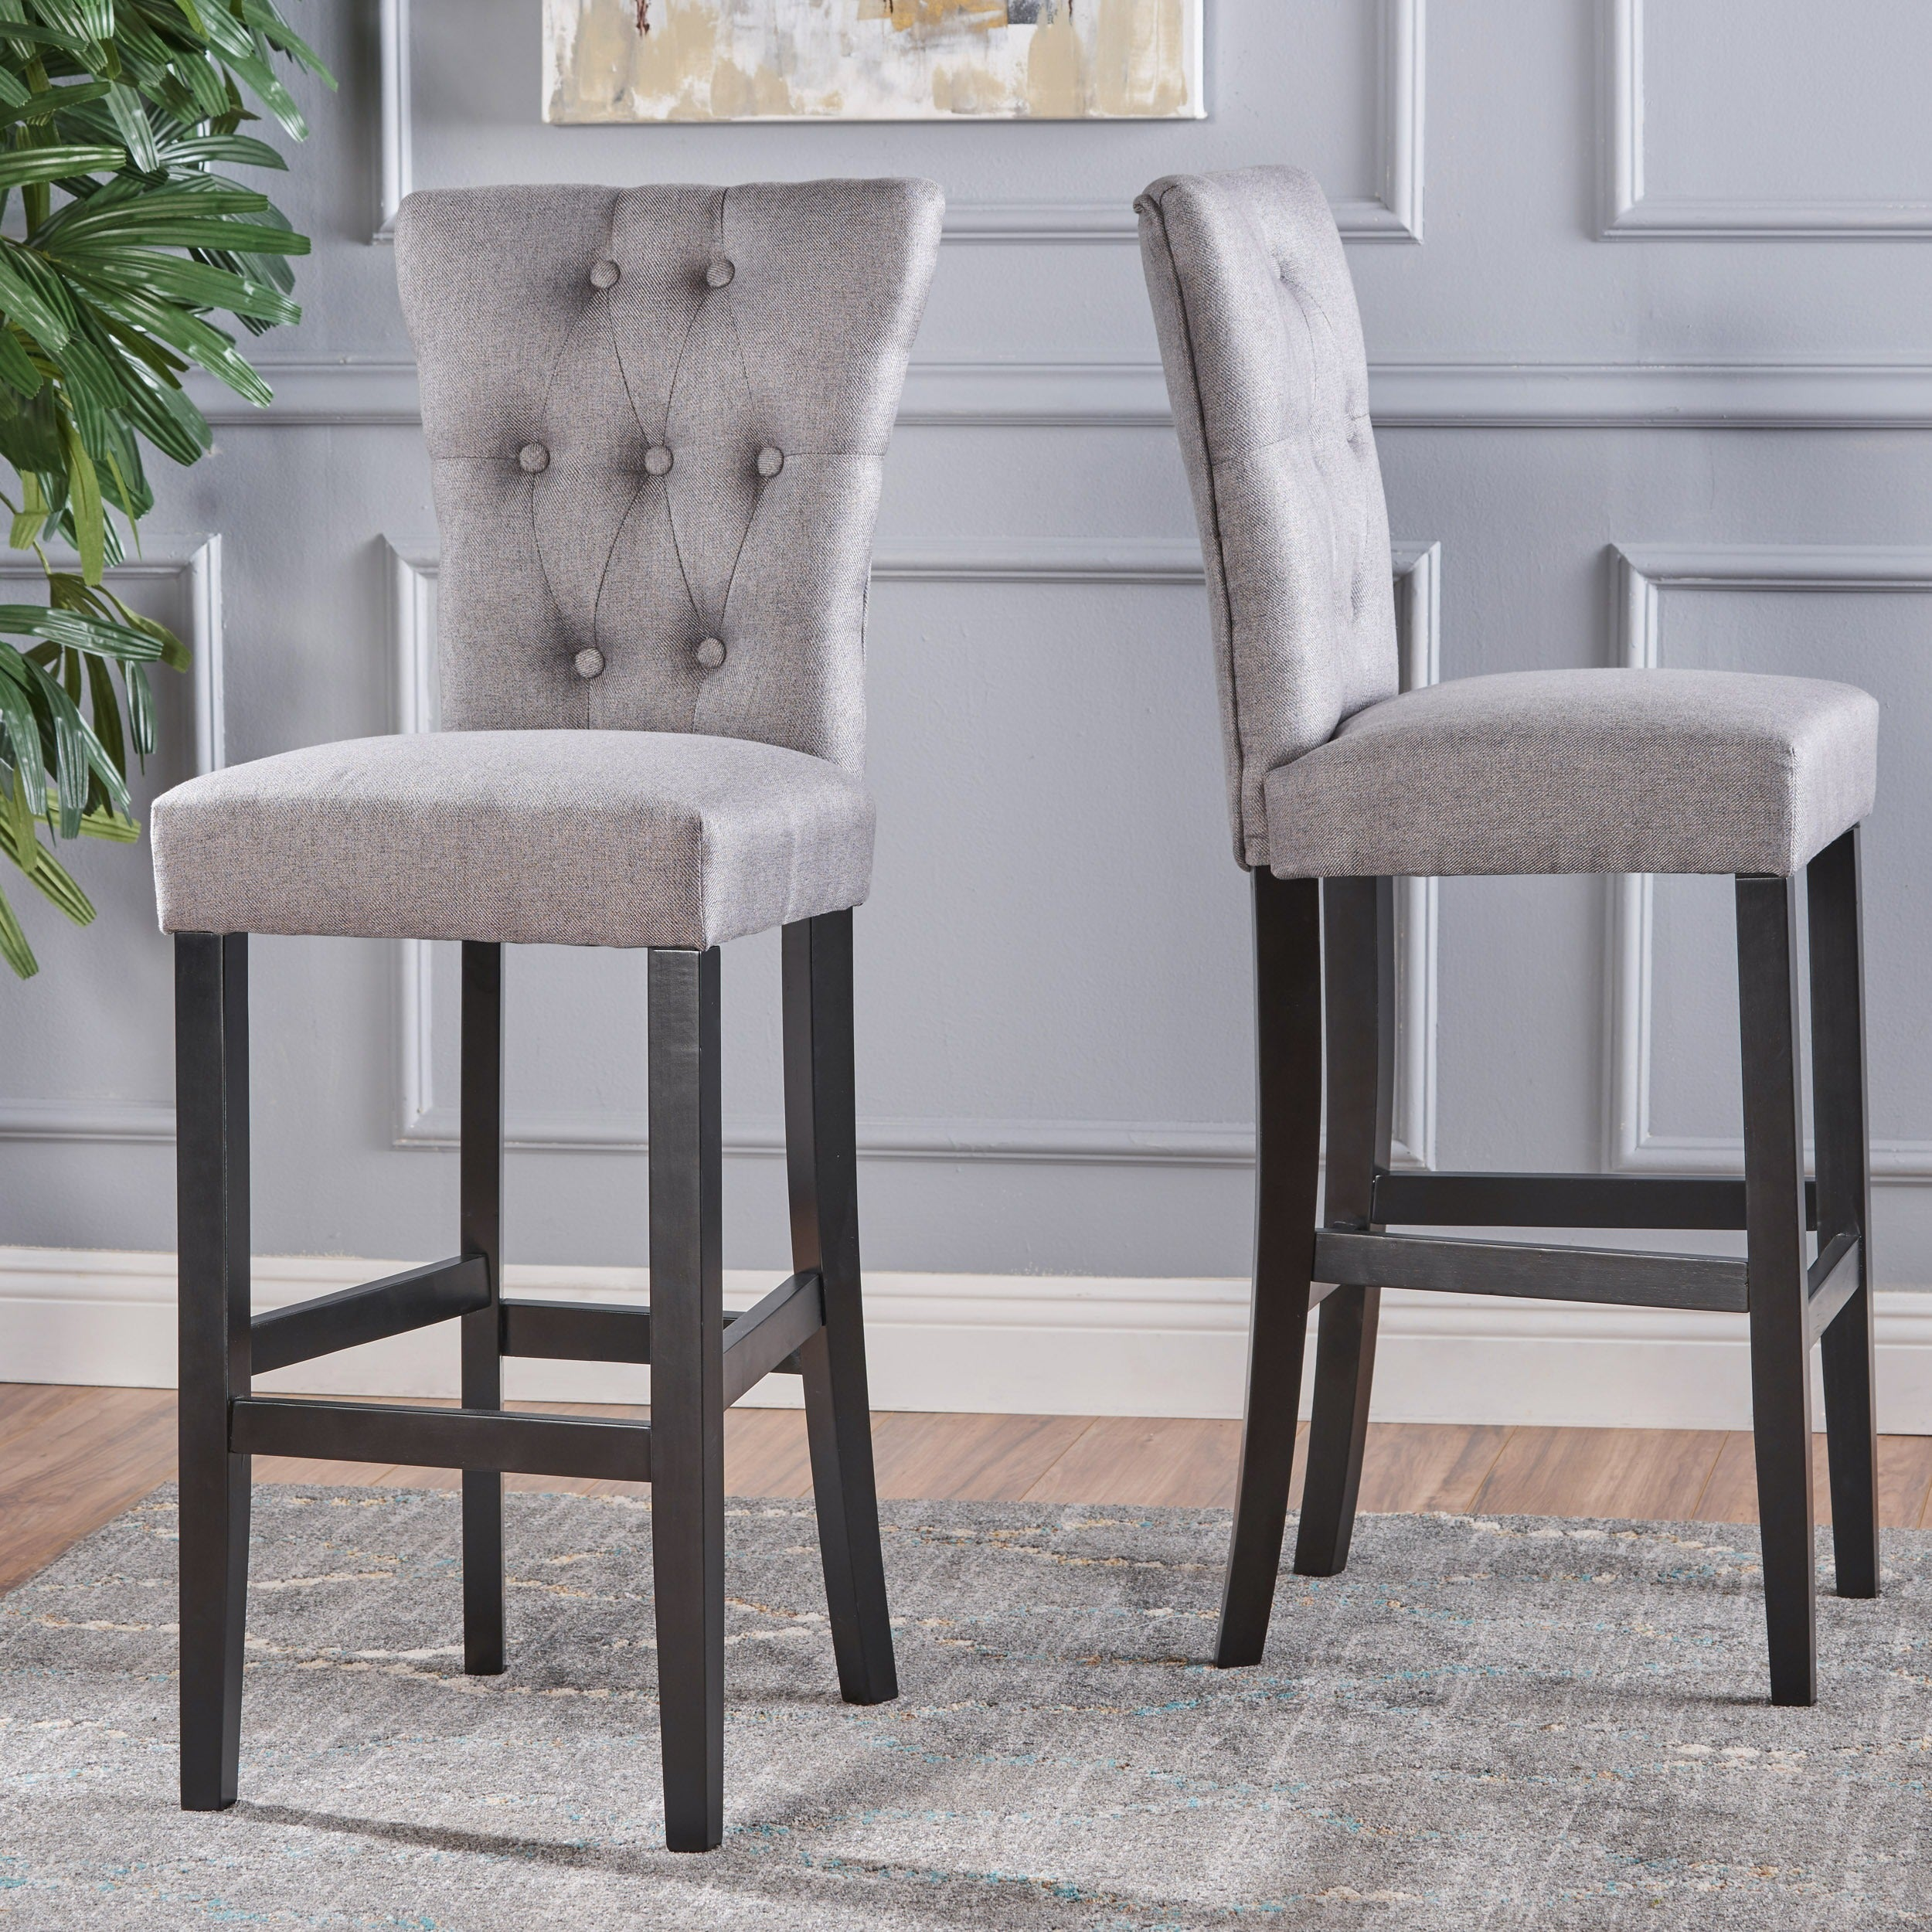 Shop pia backed fabric barstools by christopher knight home set of 2 on sale free shipping today overstock com 16718646